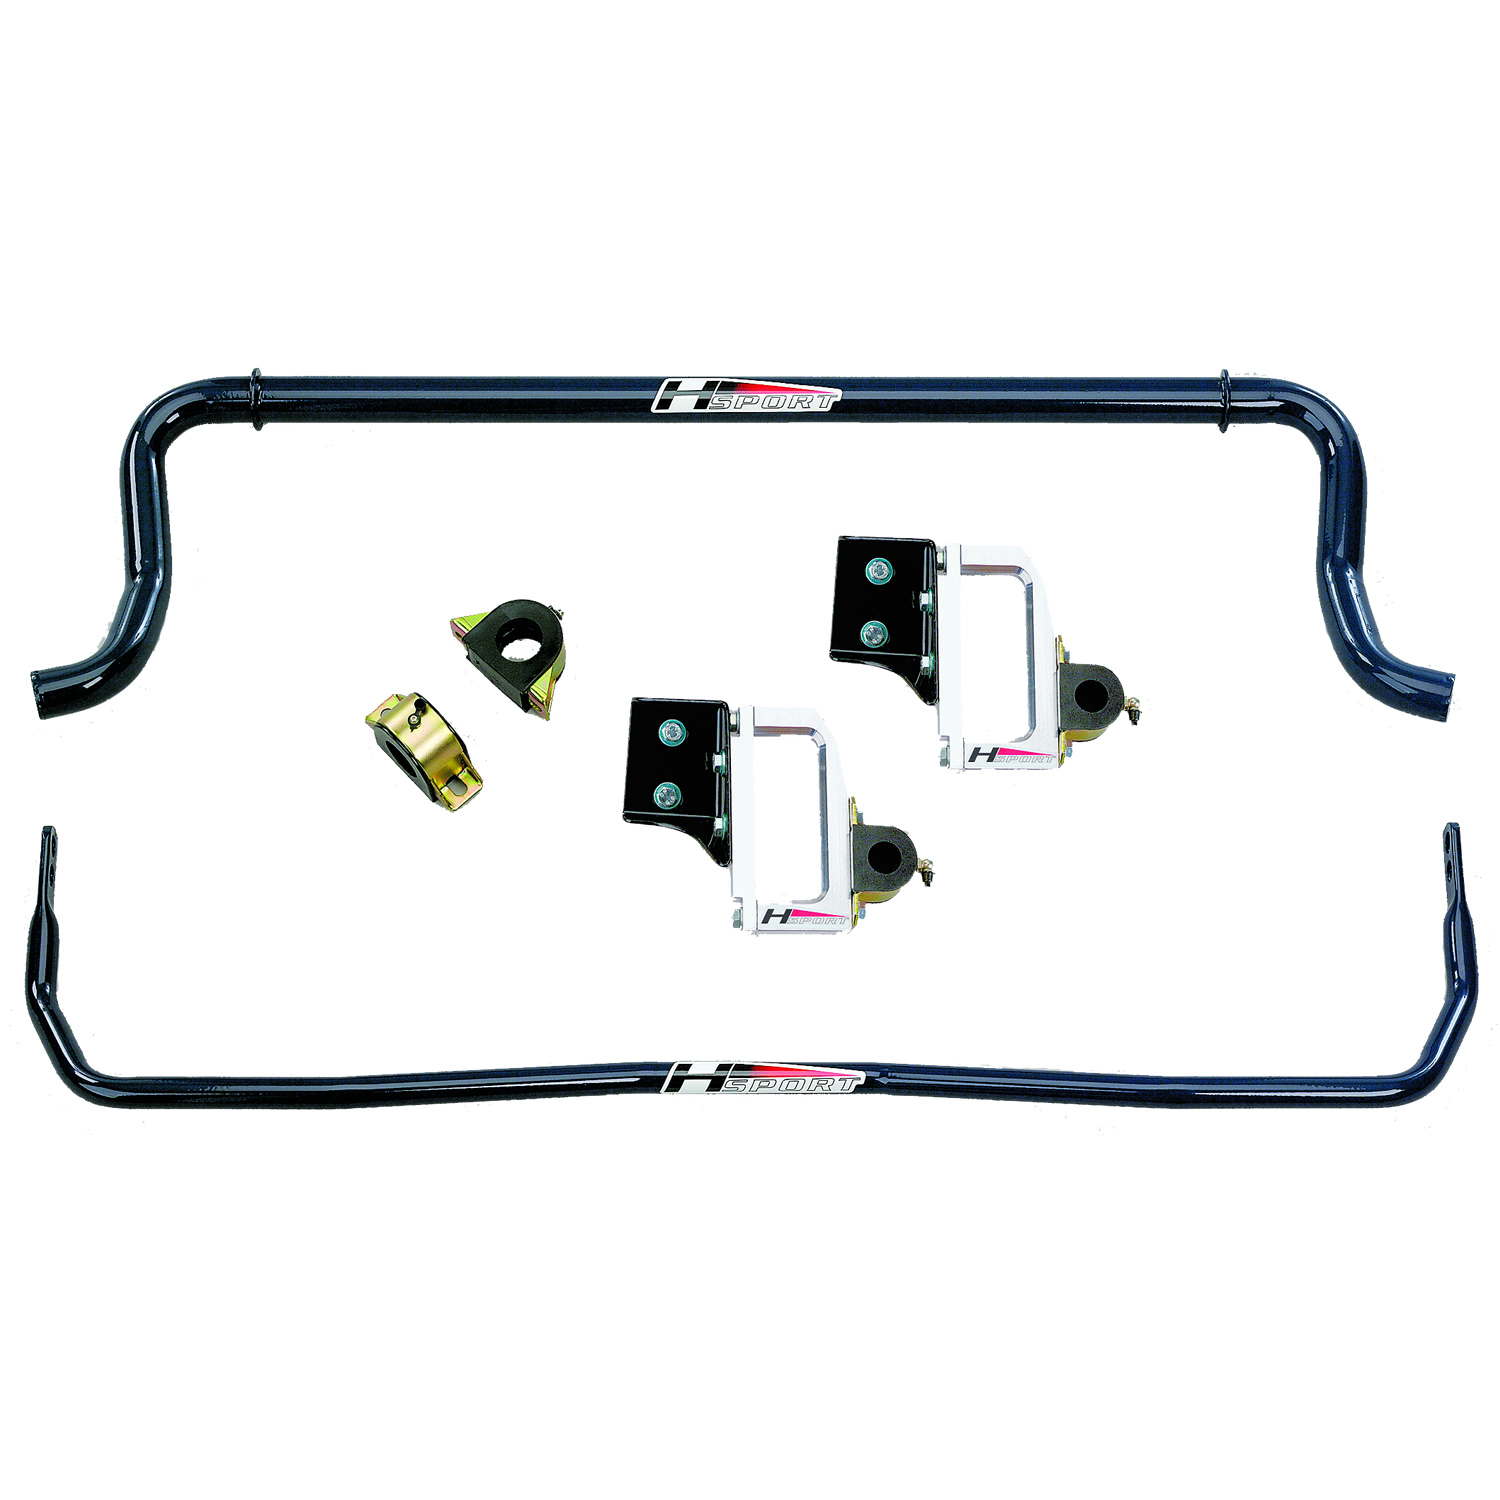 1996-2002 Audi B5 Sport Sway Bar Set from Hotchkis Sport Suspension